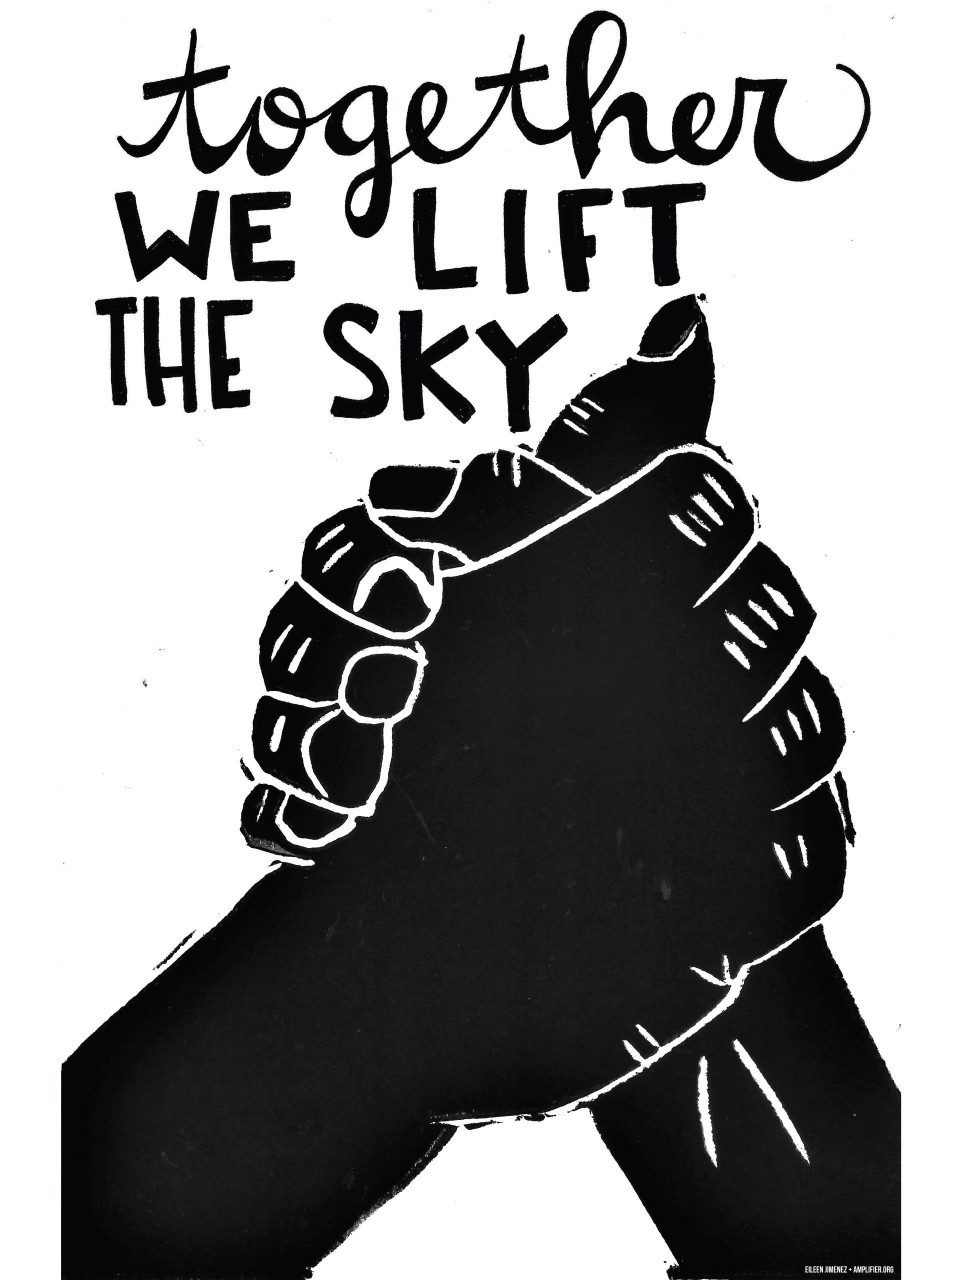 """together we lift the sky"" [hands clasped] - A black and white linocut graphic by Eileen Jimenez of two hands clasped tightly from the wrist up. Above the hands ""Together we lift the sky"" is written, with ""together"" in lower case flowing cursive script and ""we lift the sky"" in blocky capital letters."